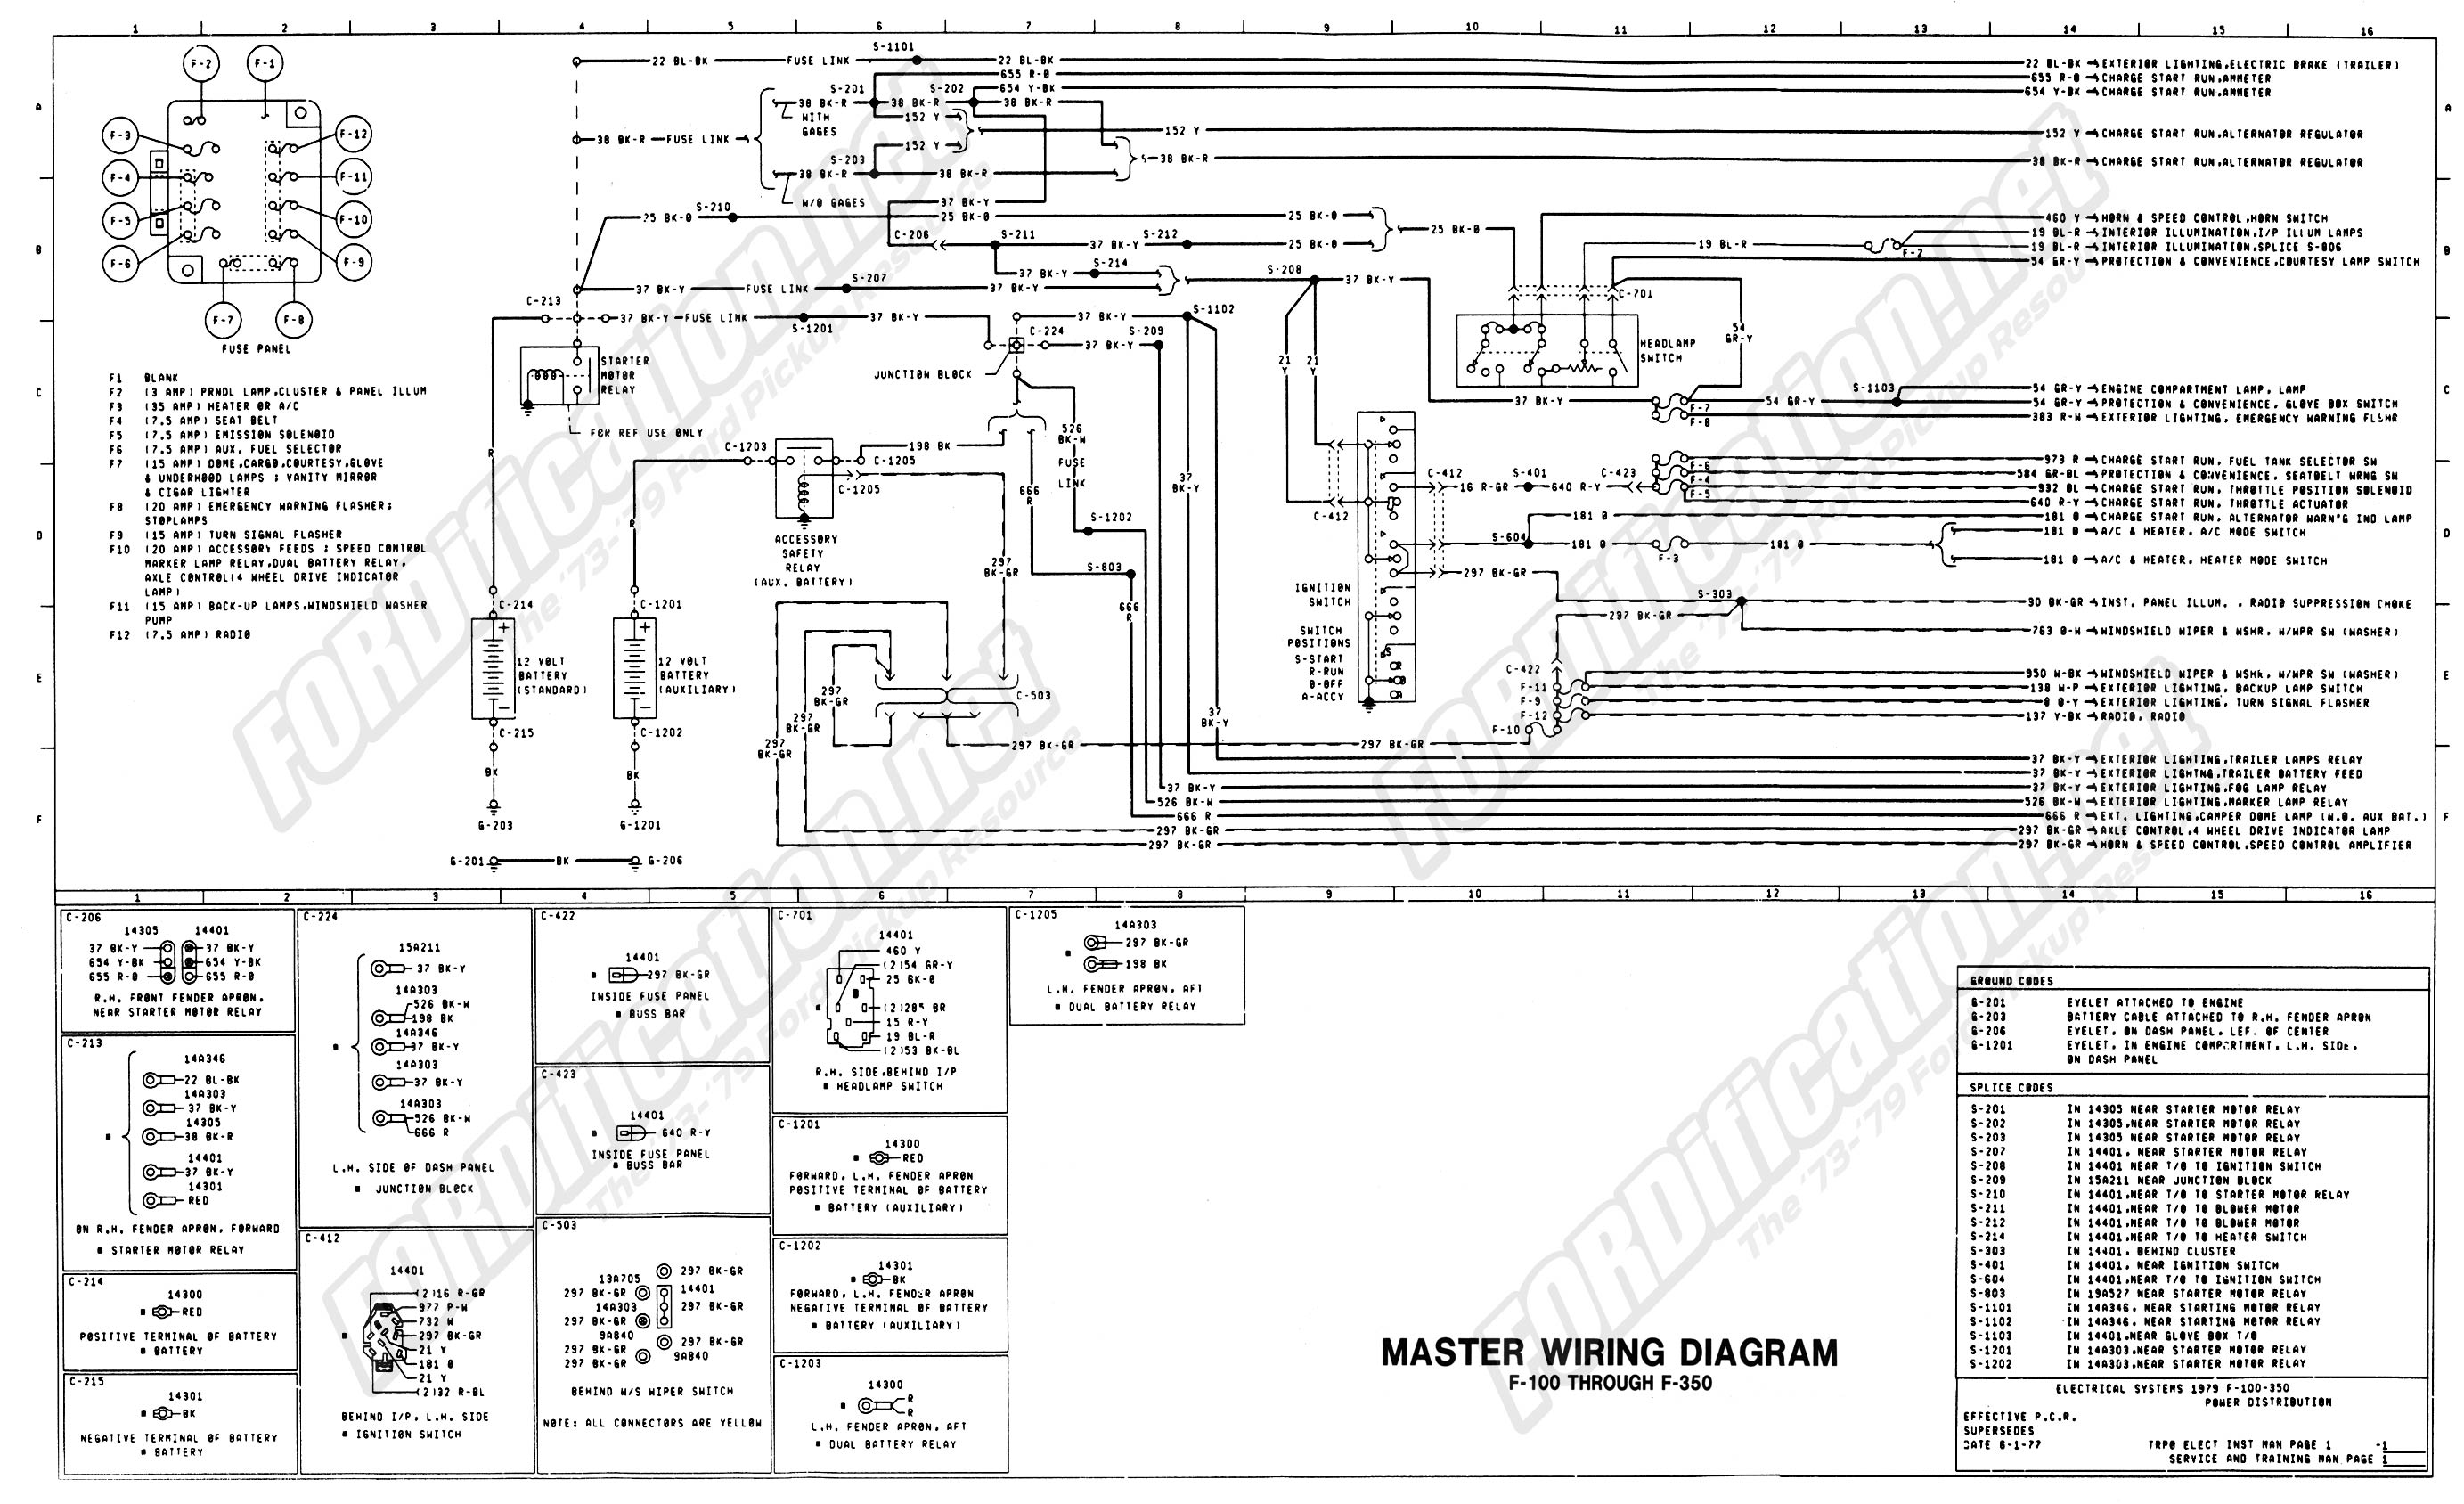 wiring_79master_1of9 1973 1979 ford truck wiring diagrams & schematics fordification net Wire Gauge Amp Chart at soozxer.org